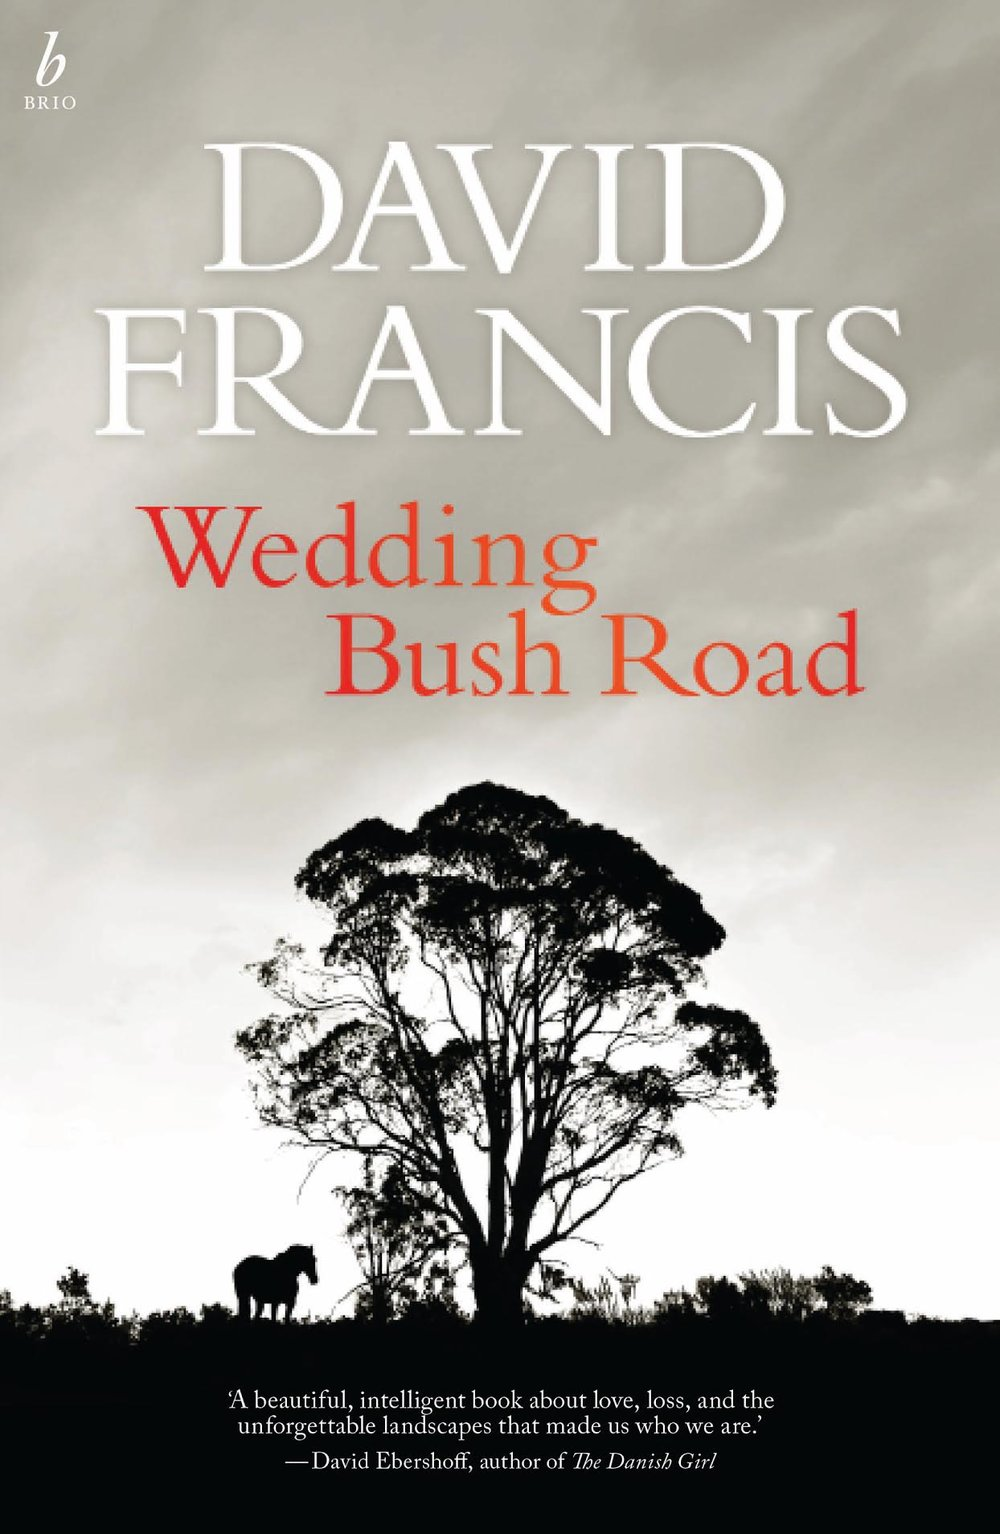 david francis - wedding bush road.jpg